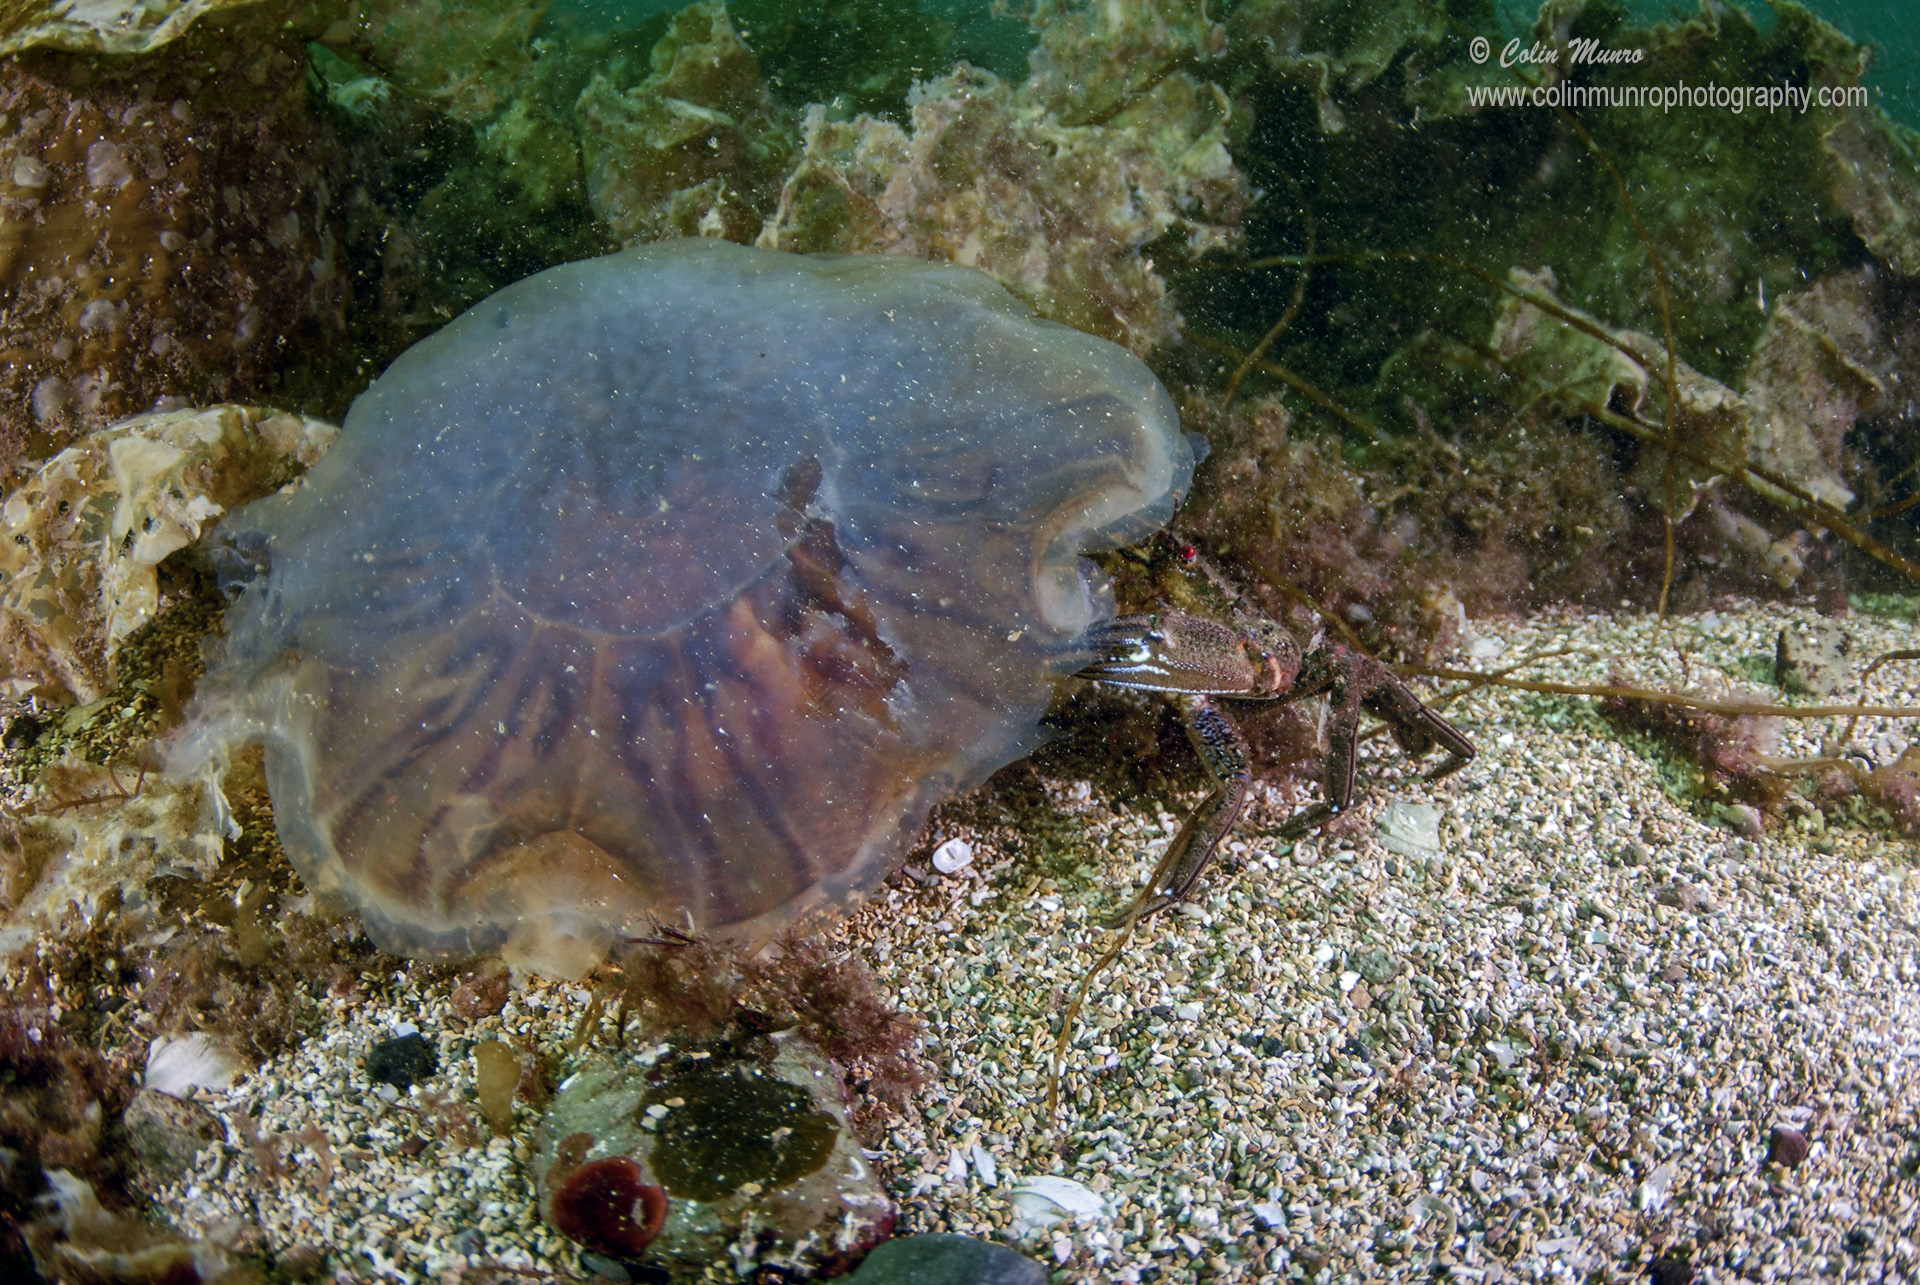 Dying lion's mane jellyfish (Cyanea capillata) that has sunk to the seabed being eaten by a velvet swimming crab (Necora puber).